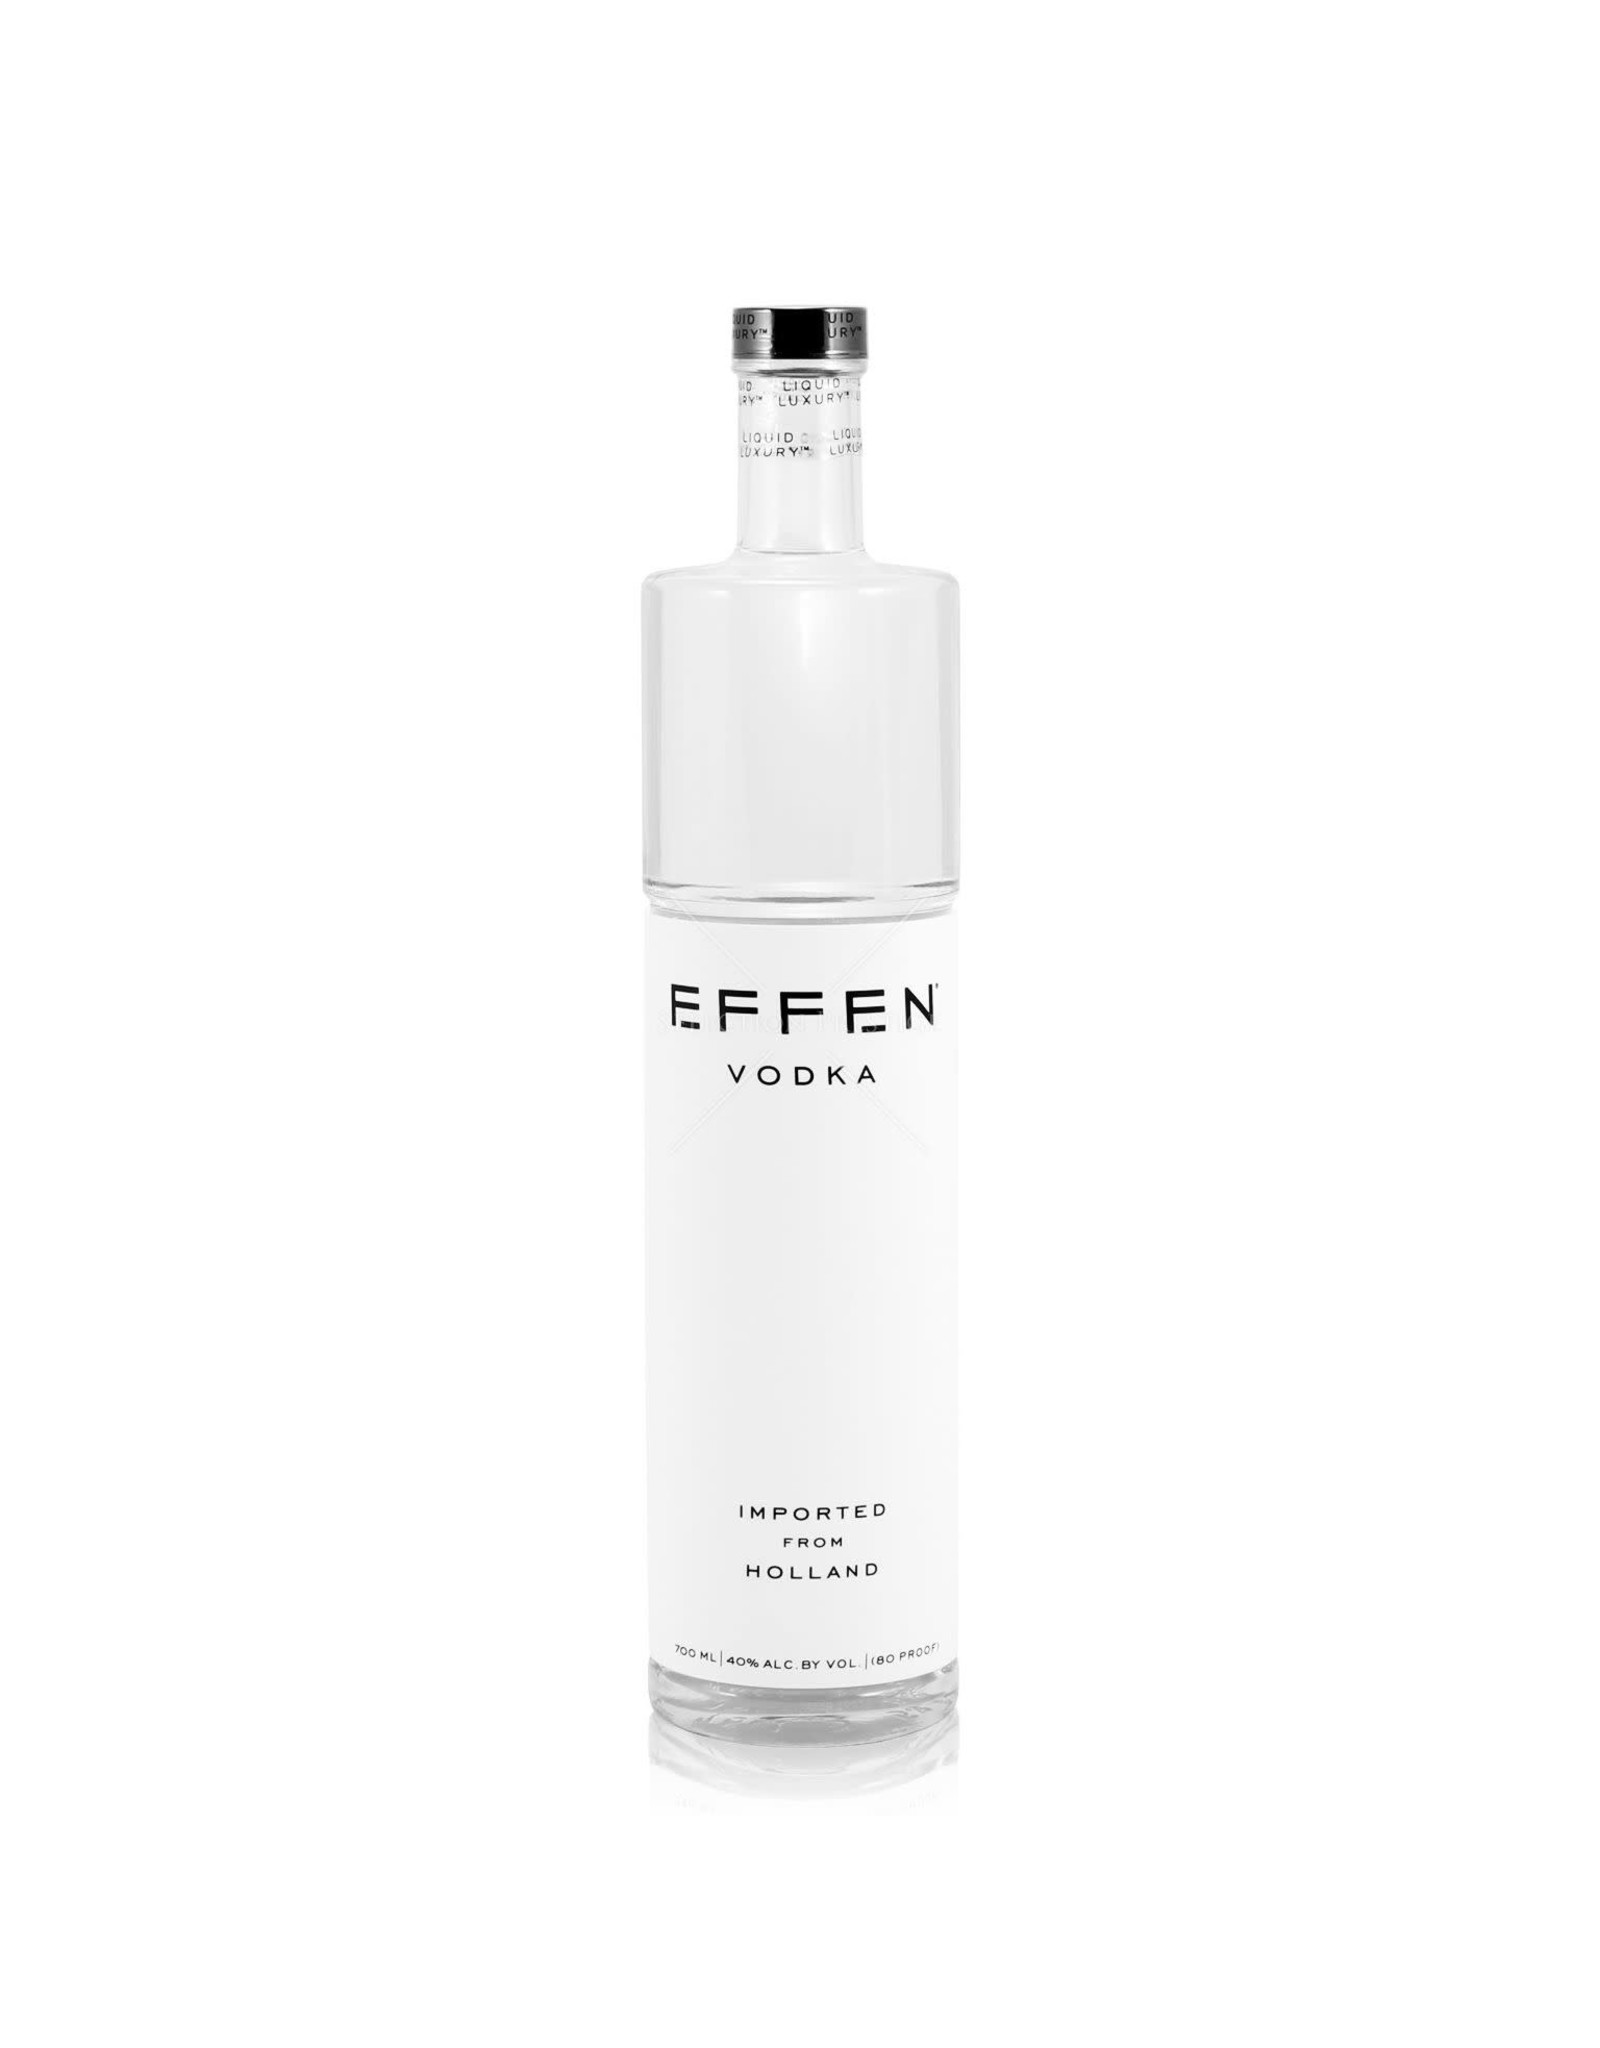 EFFEN VODKA 750ml